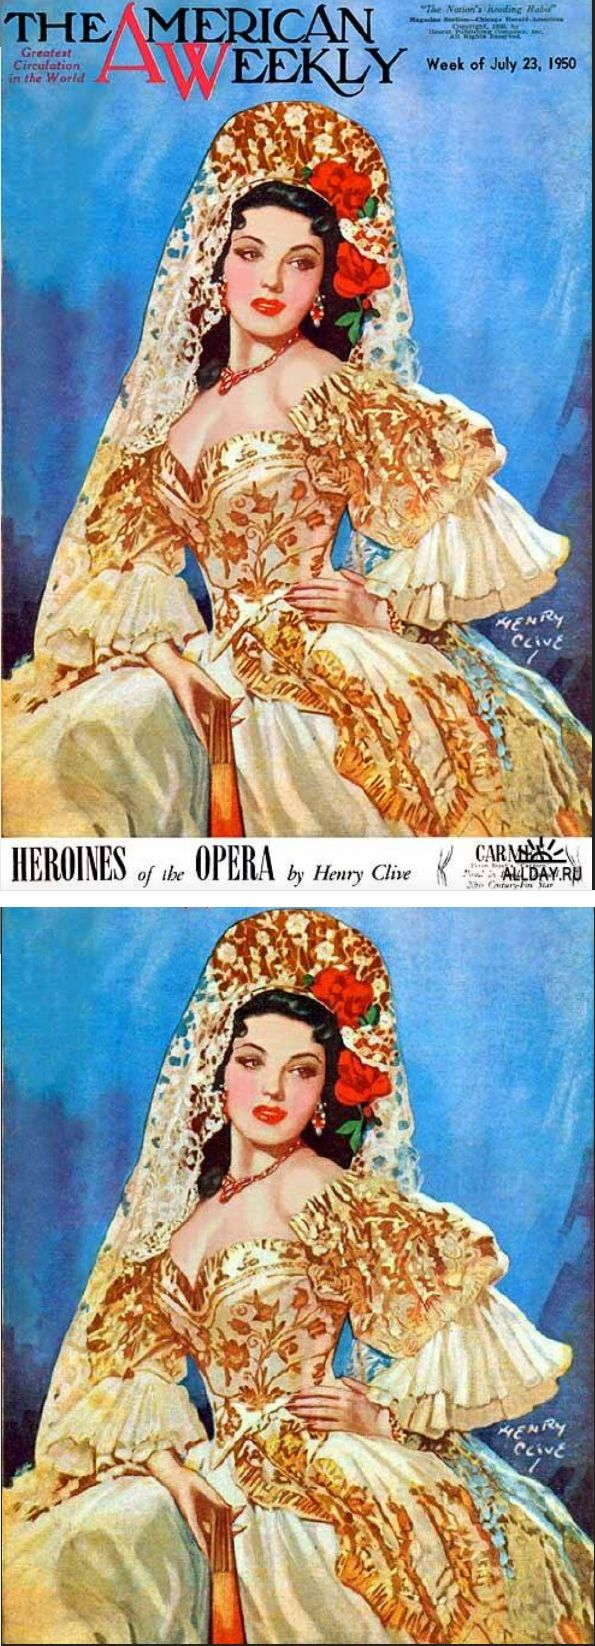 HENRY CLIVE - Heroines of the Opera - Carmine - July 23, 1950 The American Weekly - cover by vintage-rama.blogspot - pin by Teresa Carcaboso Corbacho